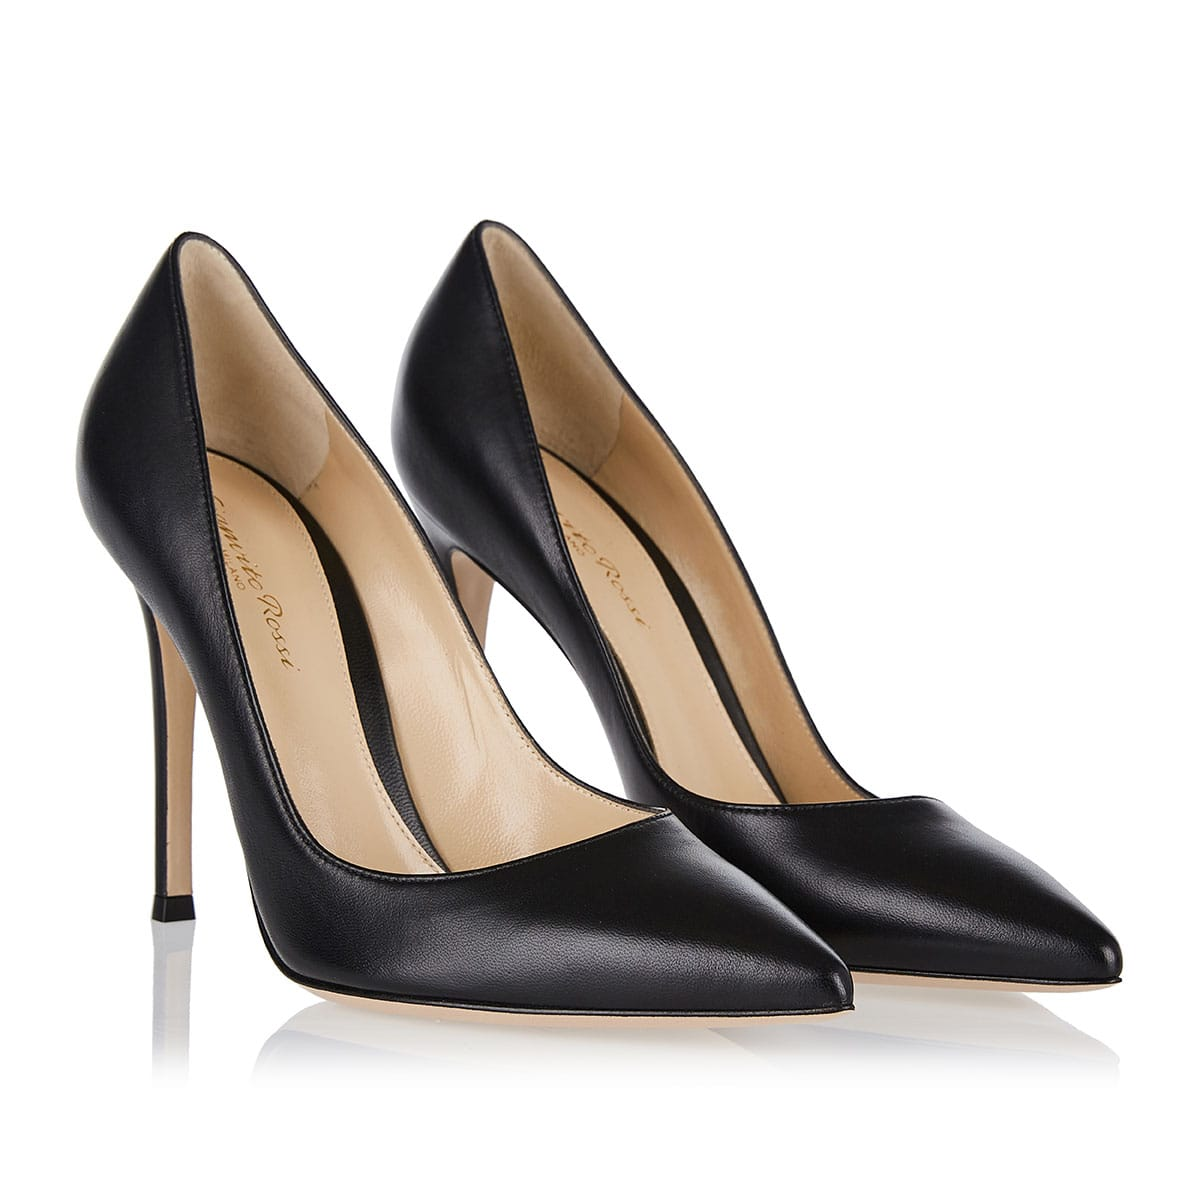 Gianvito 105 leather pumps